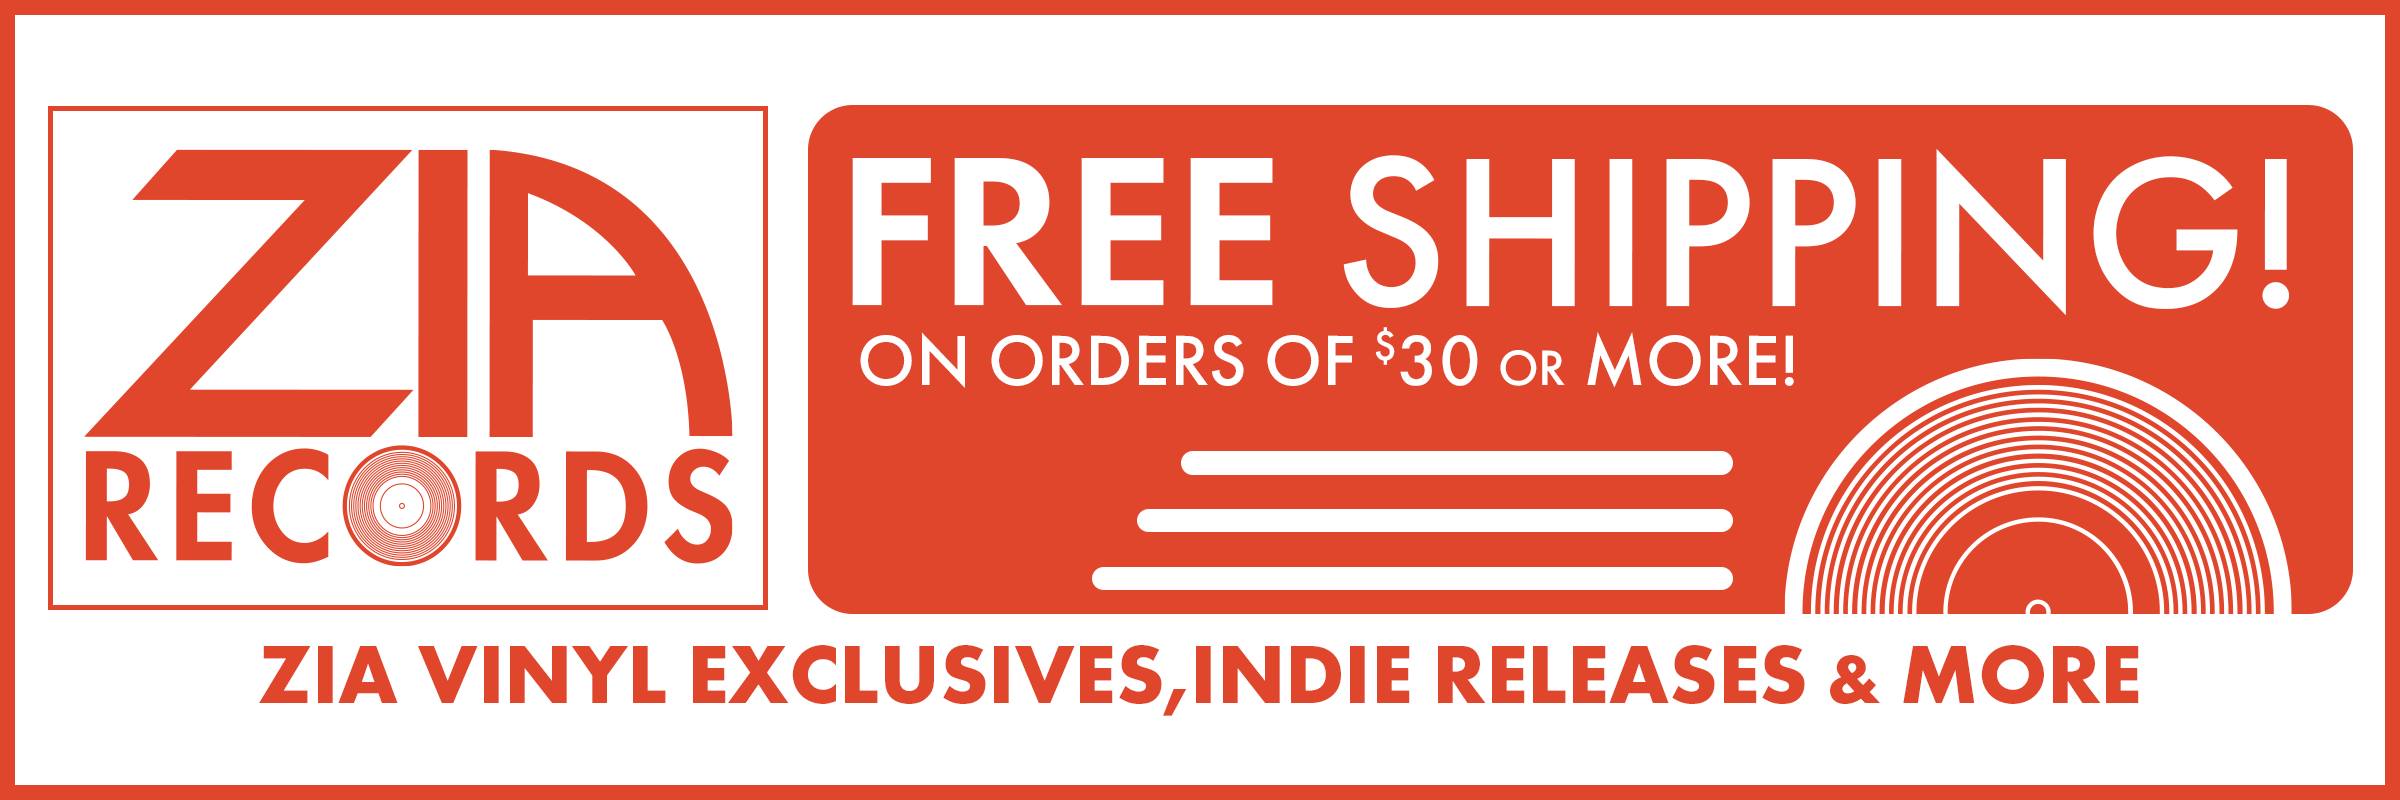 free shipping on orders over 30